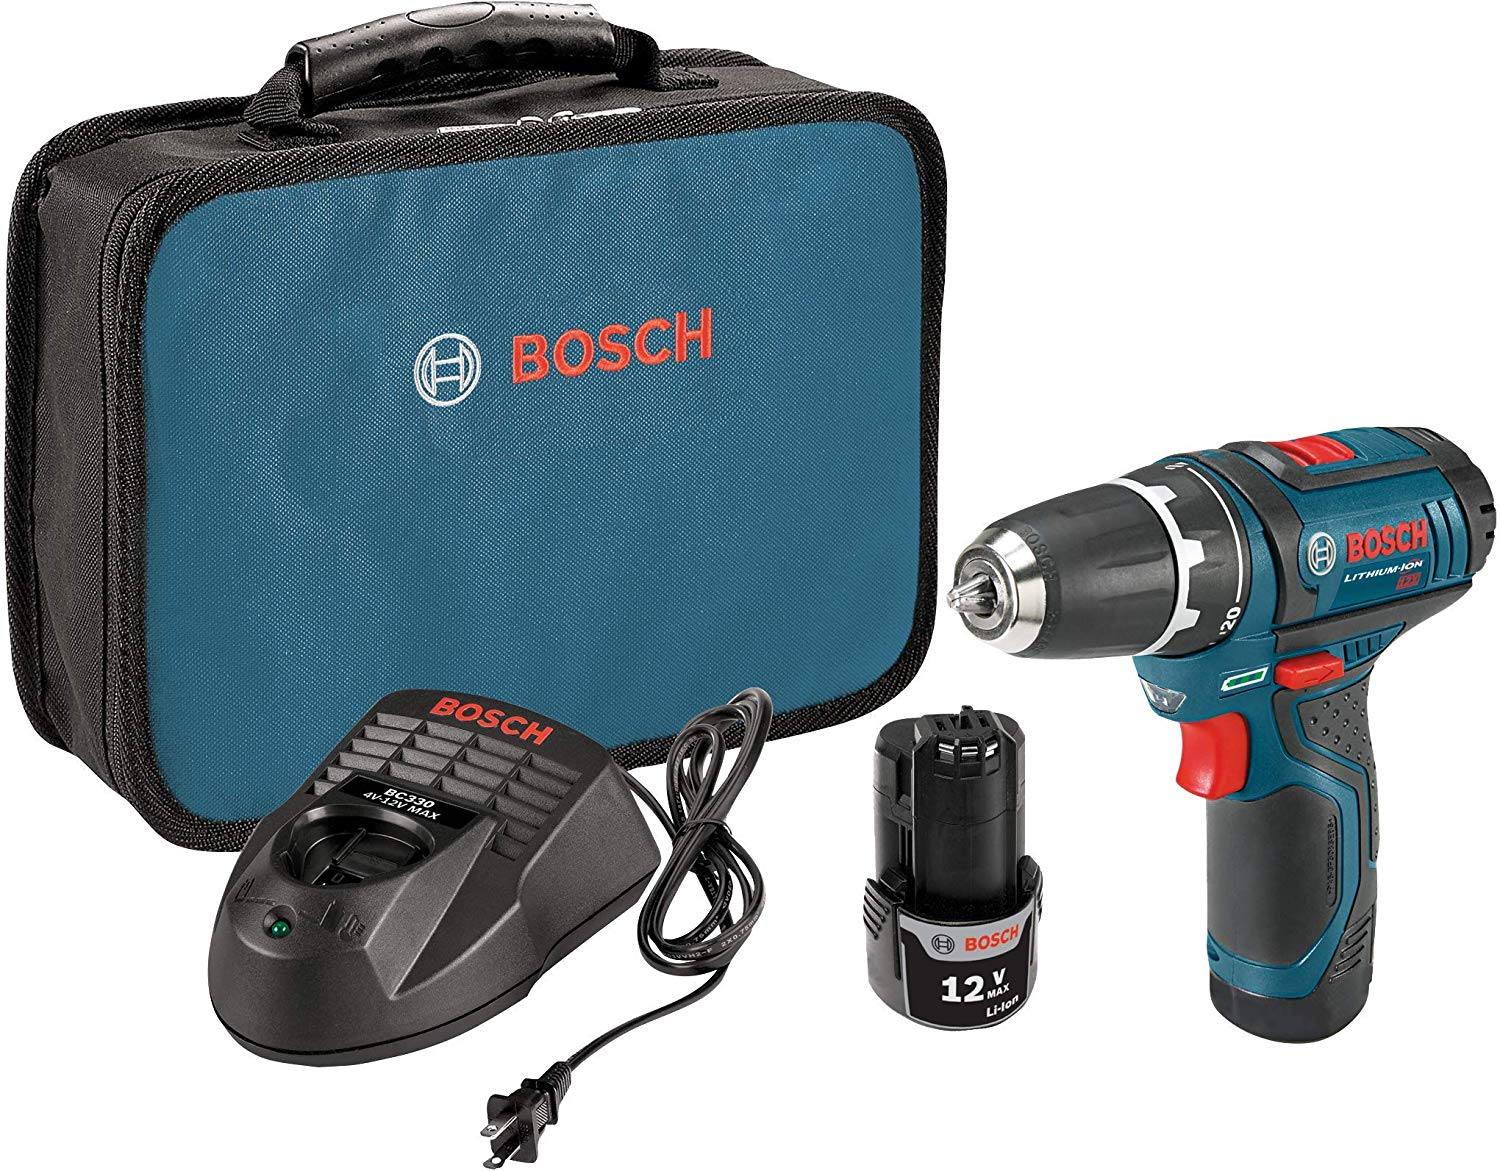 Bosch PS31 cordless drill